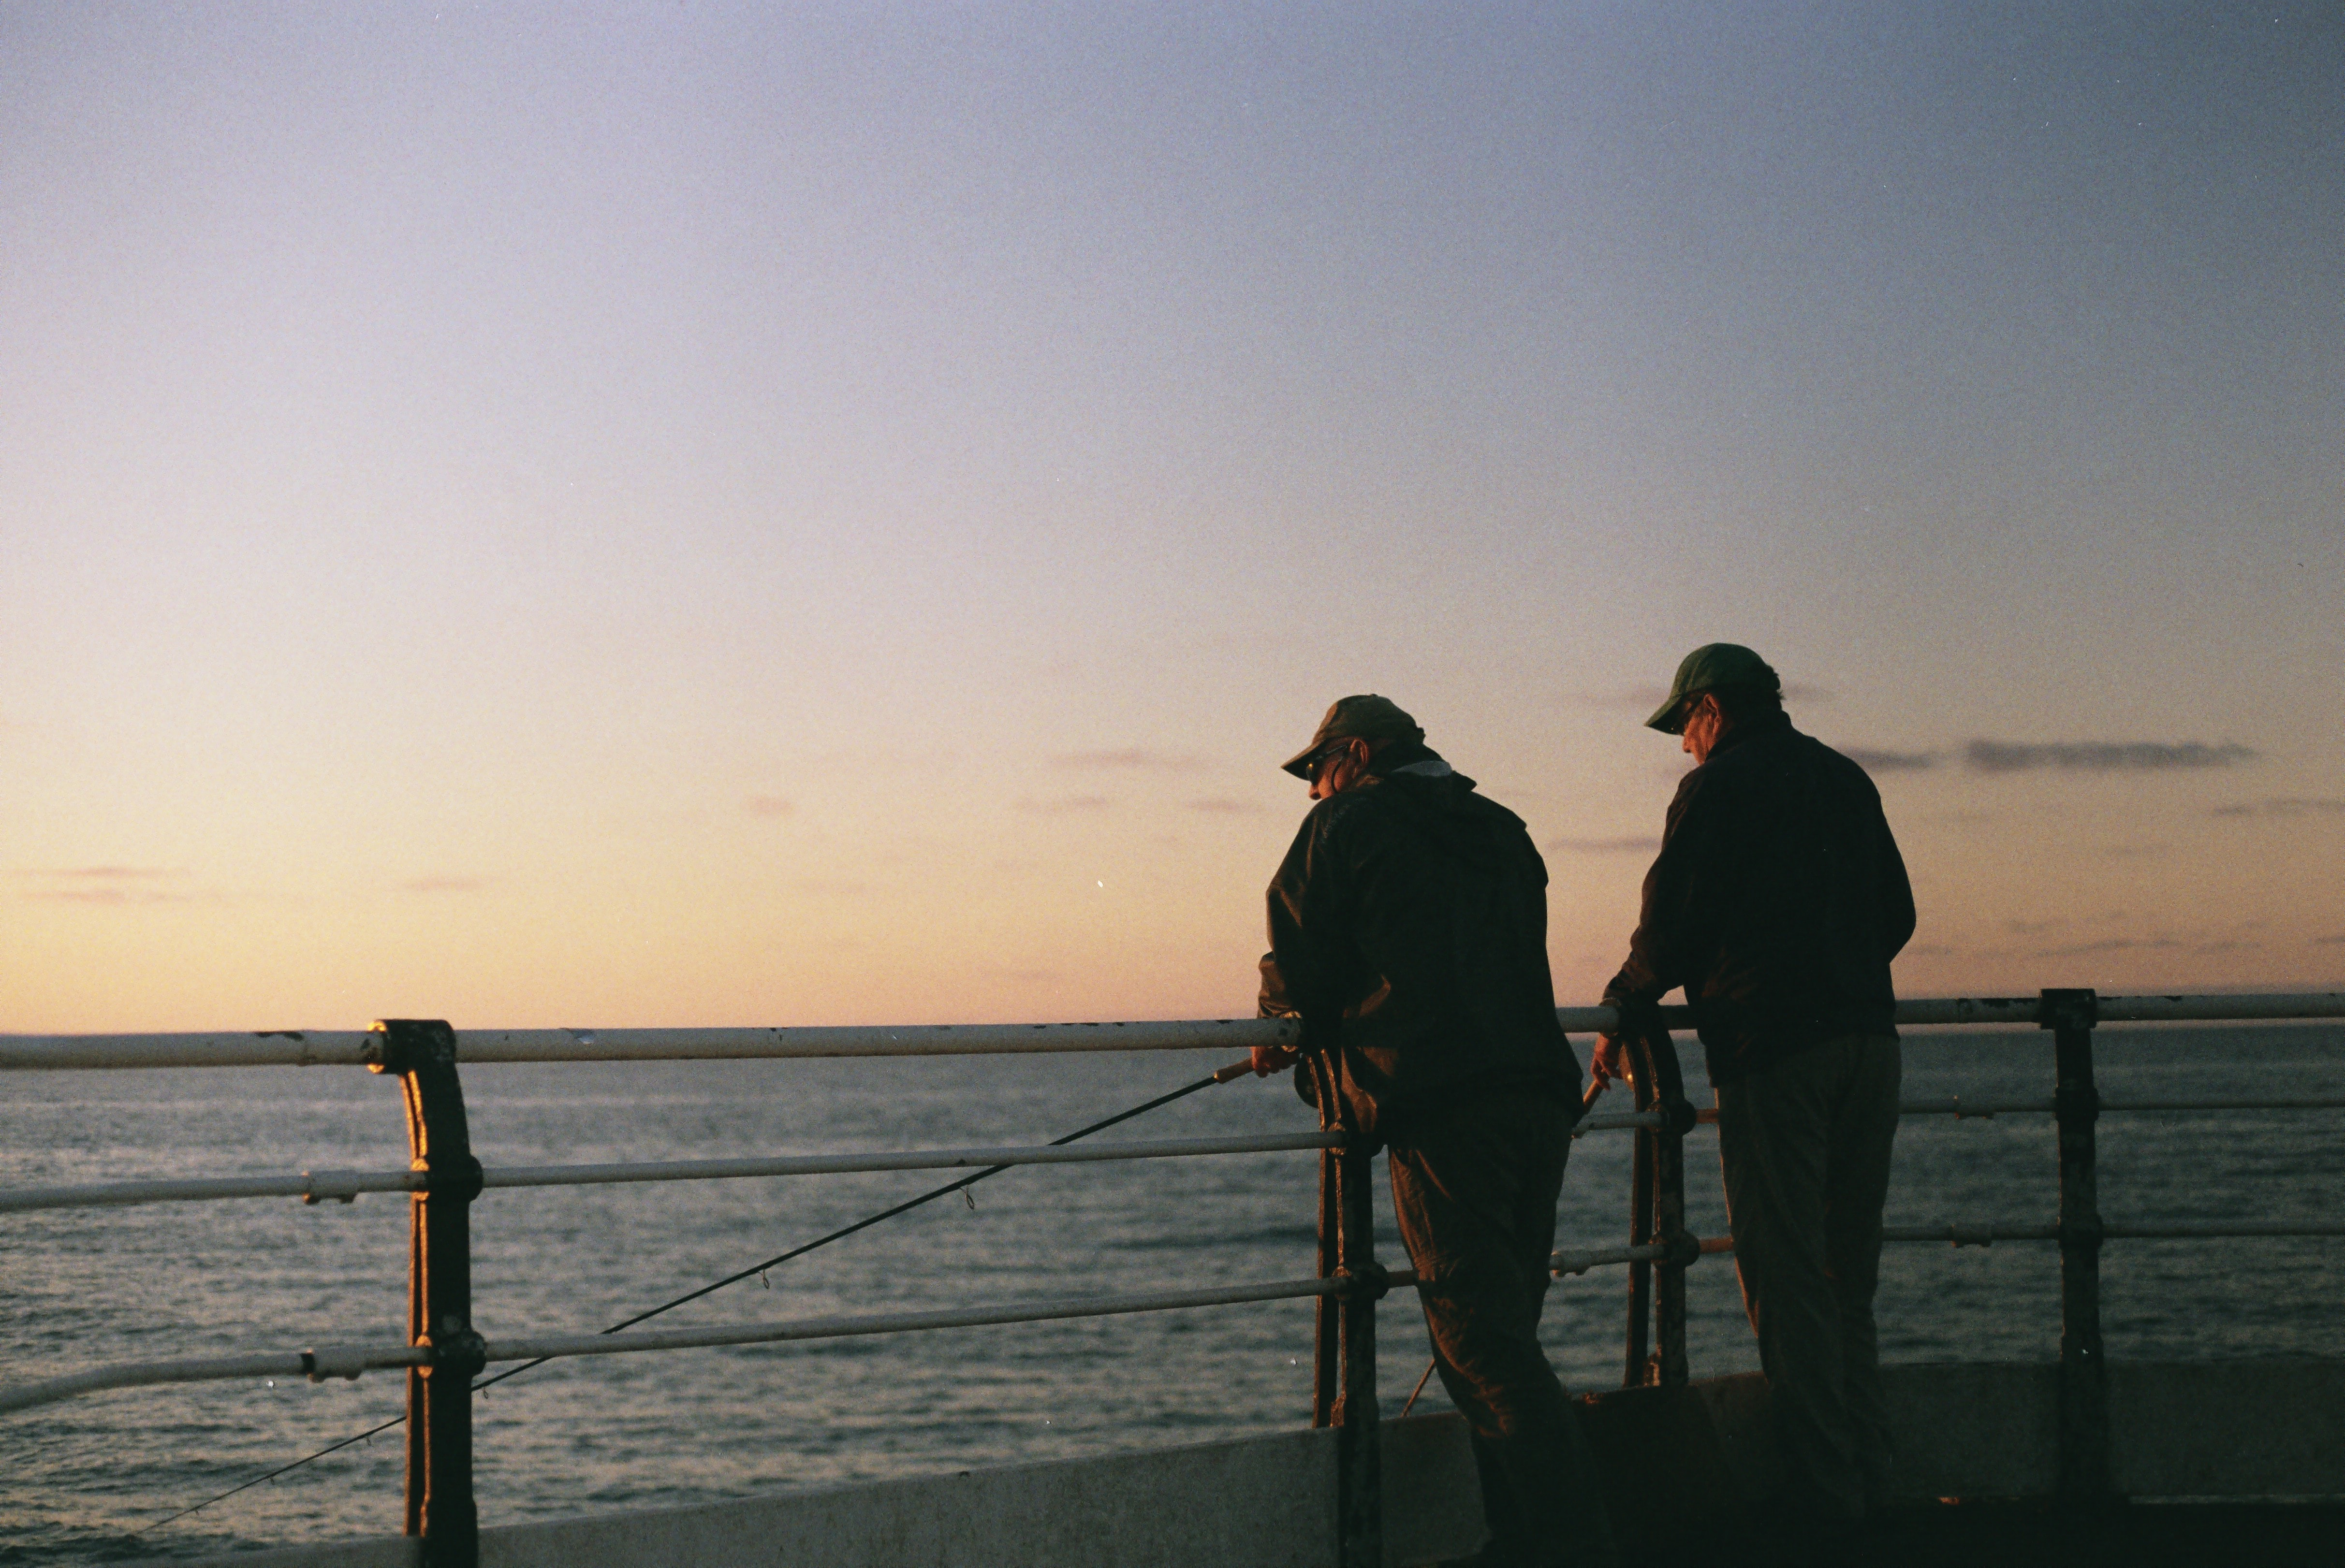 two men fishing by the railing